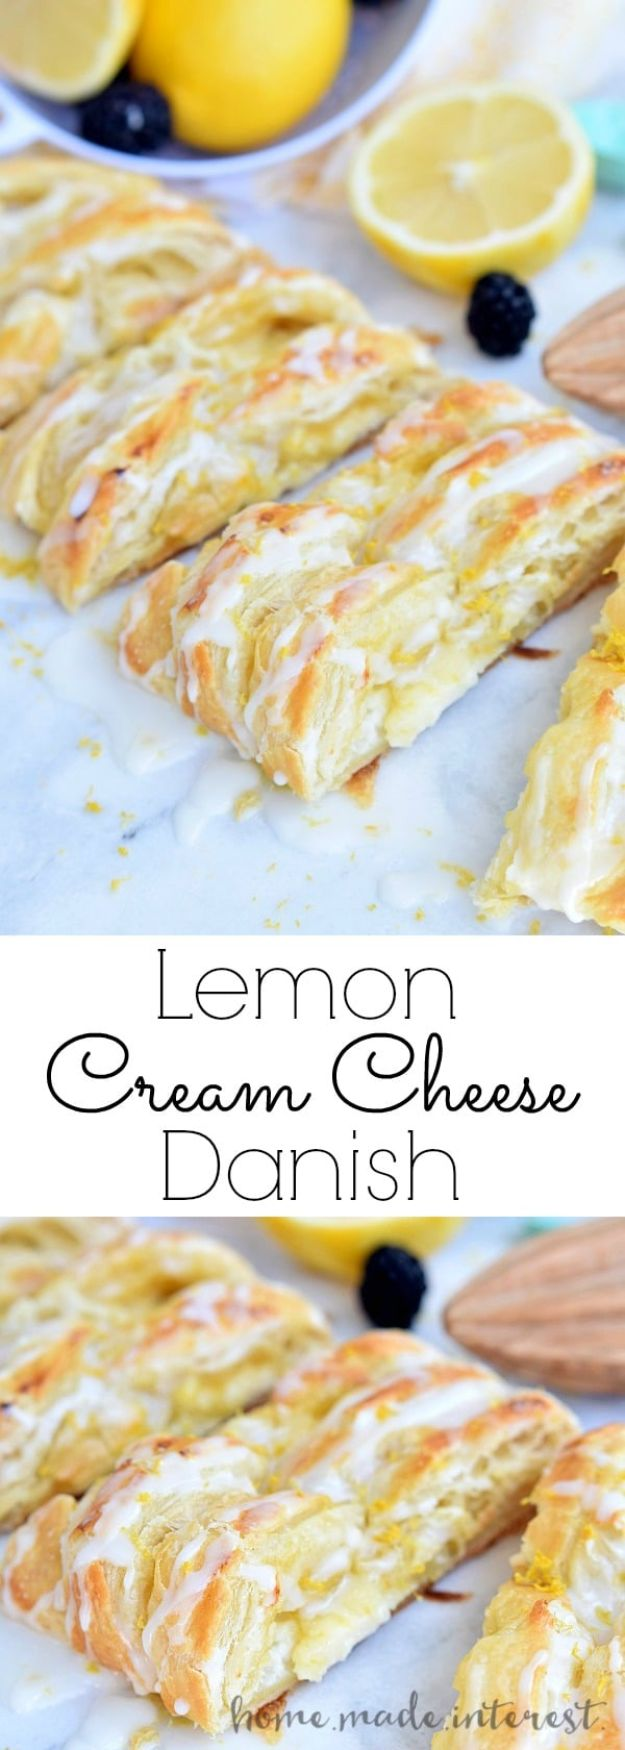 Best Recipes for the Cheese Lover - Lemon Cream Cheese Danish - Easy Recipe Ideas With Cheese - Homemade Appetizers, Dips, Dinners, Snacks, Pasta Dishes, Healthy Lunches and Soups Made With Your Favorite Cheeses - Ricotta, Cheddar, Swiss, Parmesan, Goat Chevre, Mozzarella and Feta Ideas - Grilled, Healthy, Vegan and Vegetarian #cheeserecipes #recipes #recipeideas #cheese #cheeserecipe